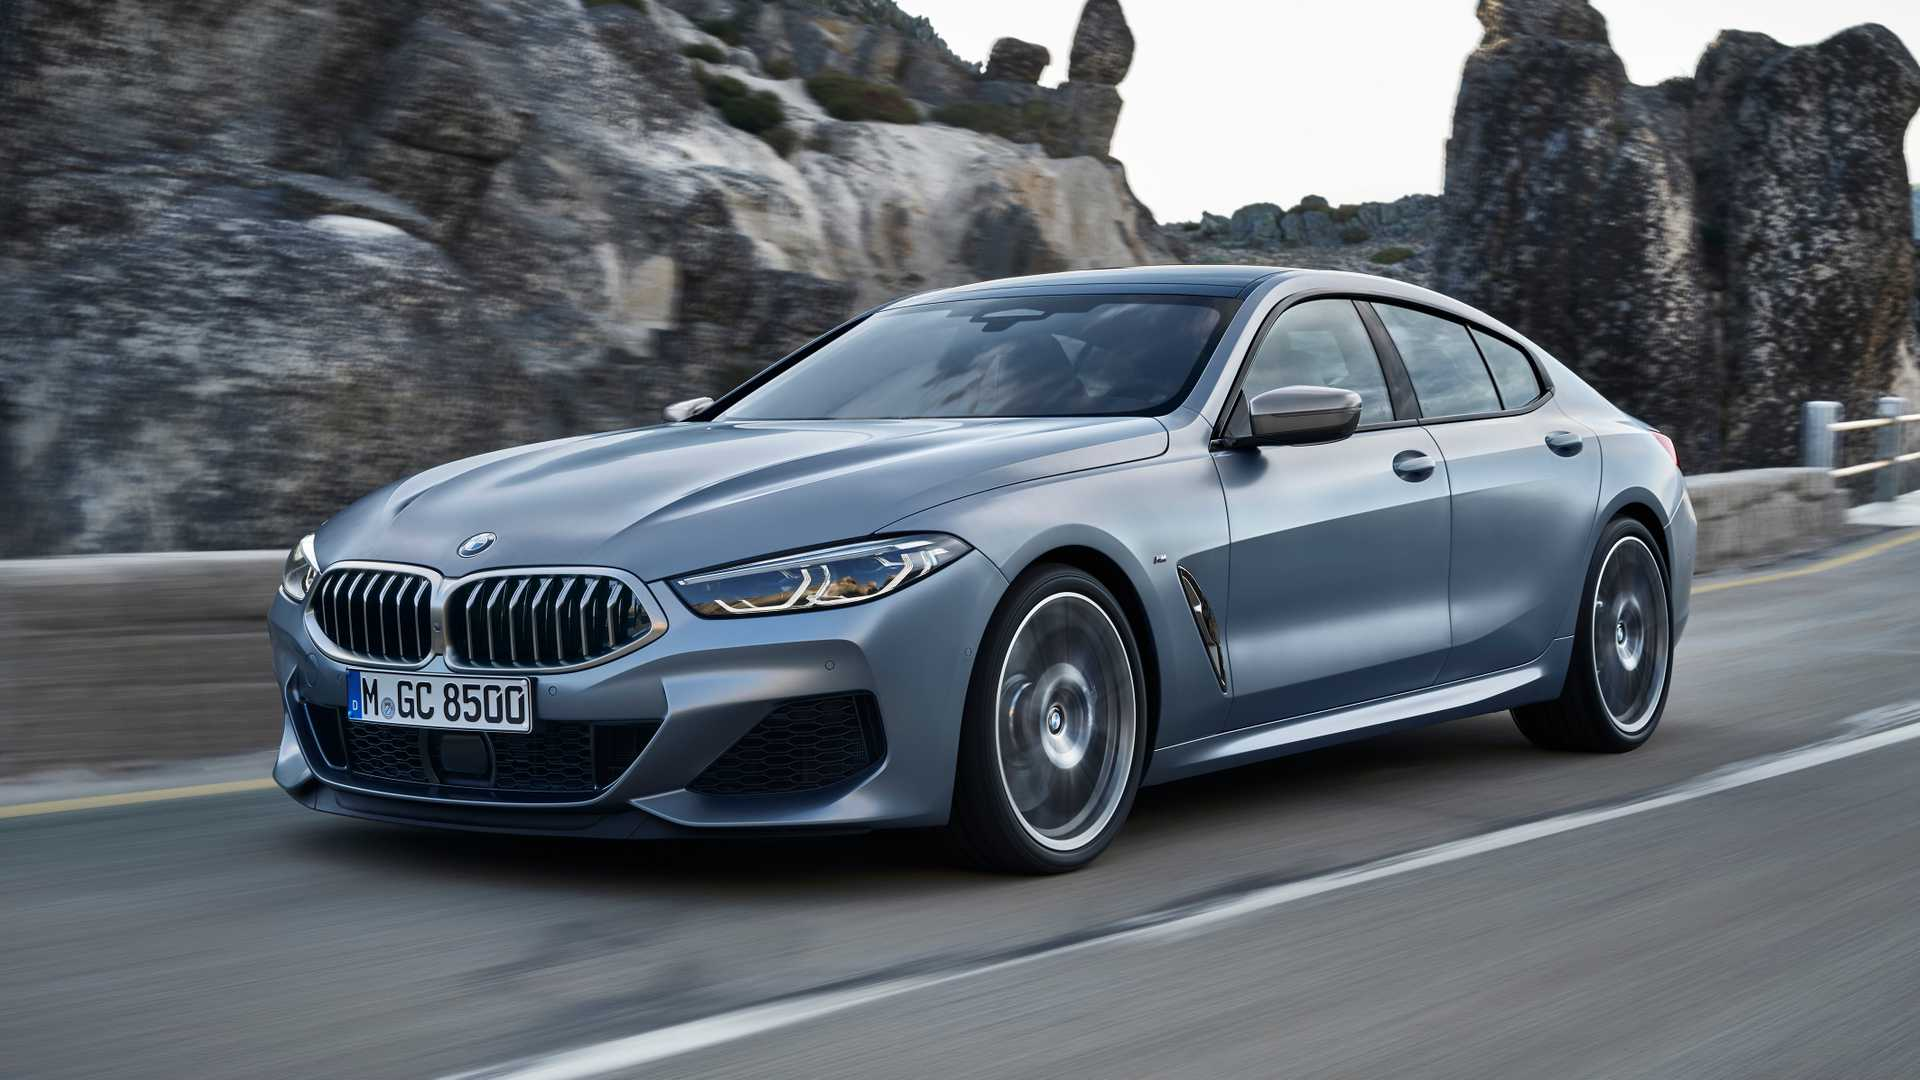 2020 Bmw 8 Series Coupe Price